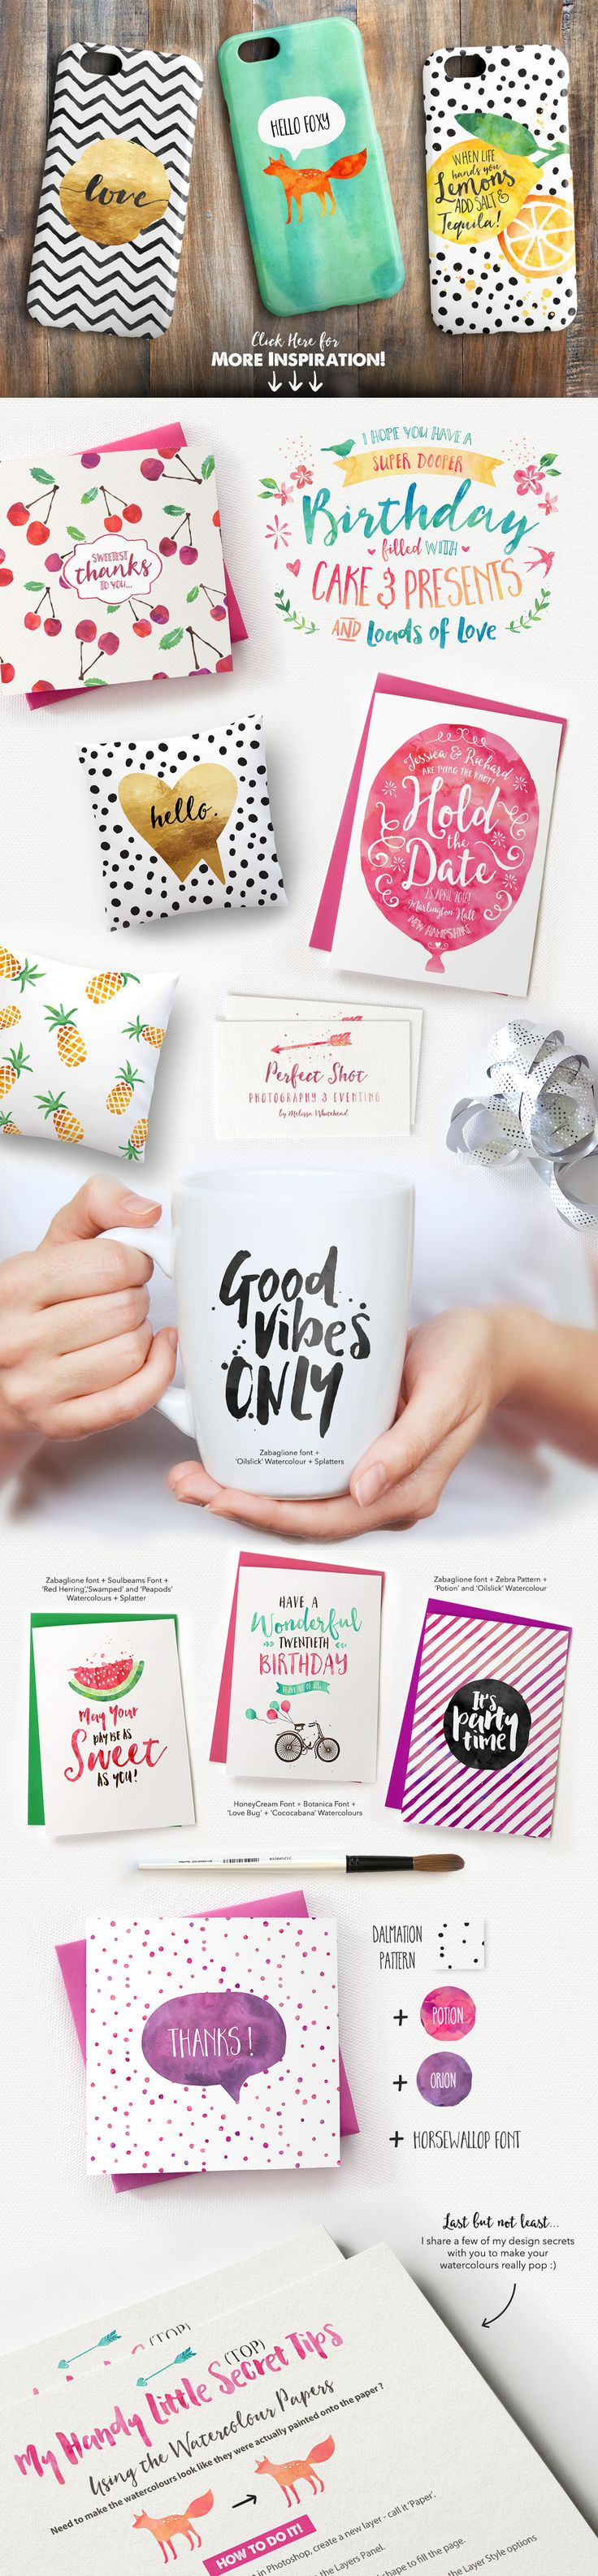 Love the brush lettering possibilities with the fonts in this kit!